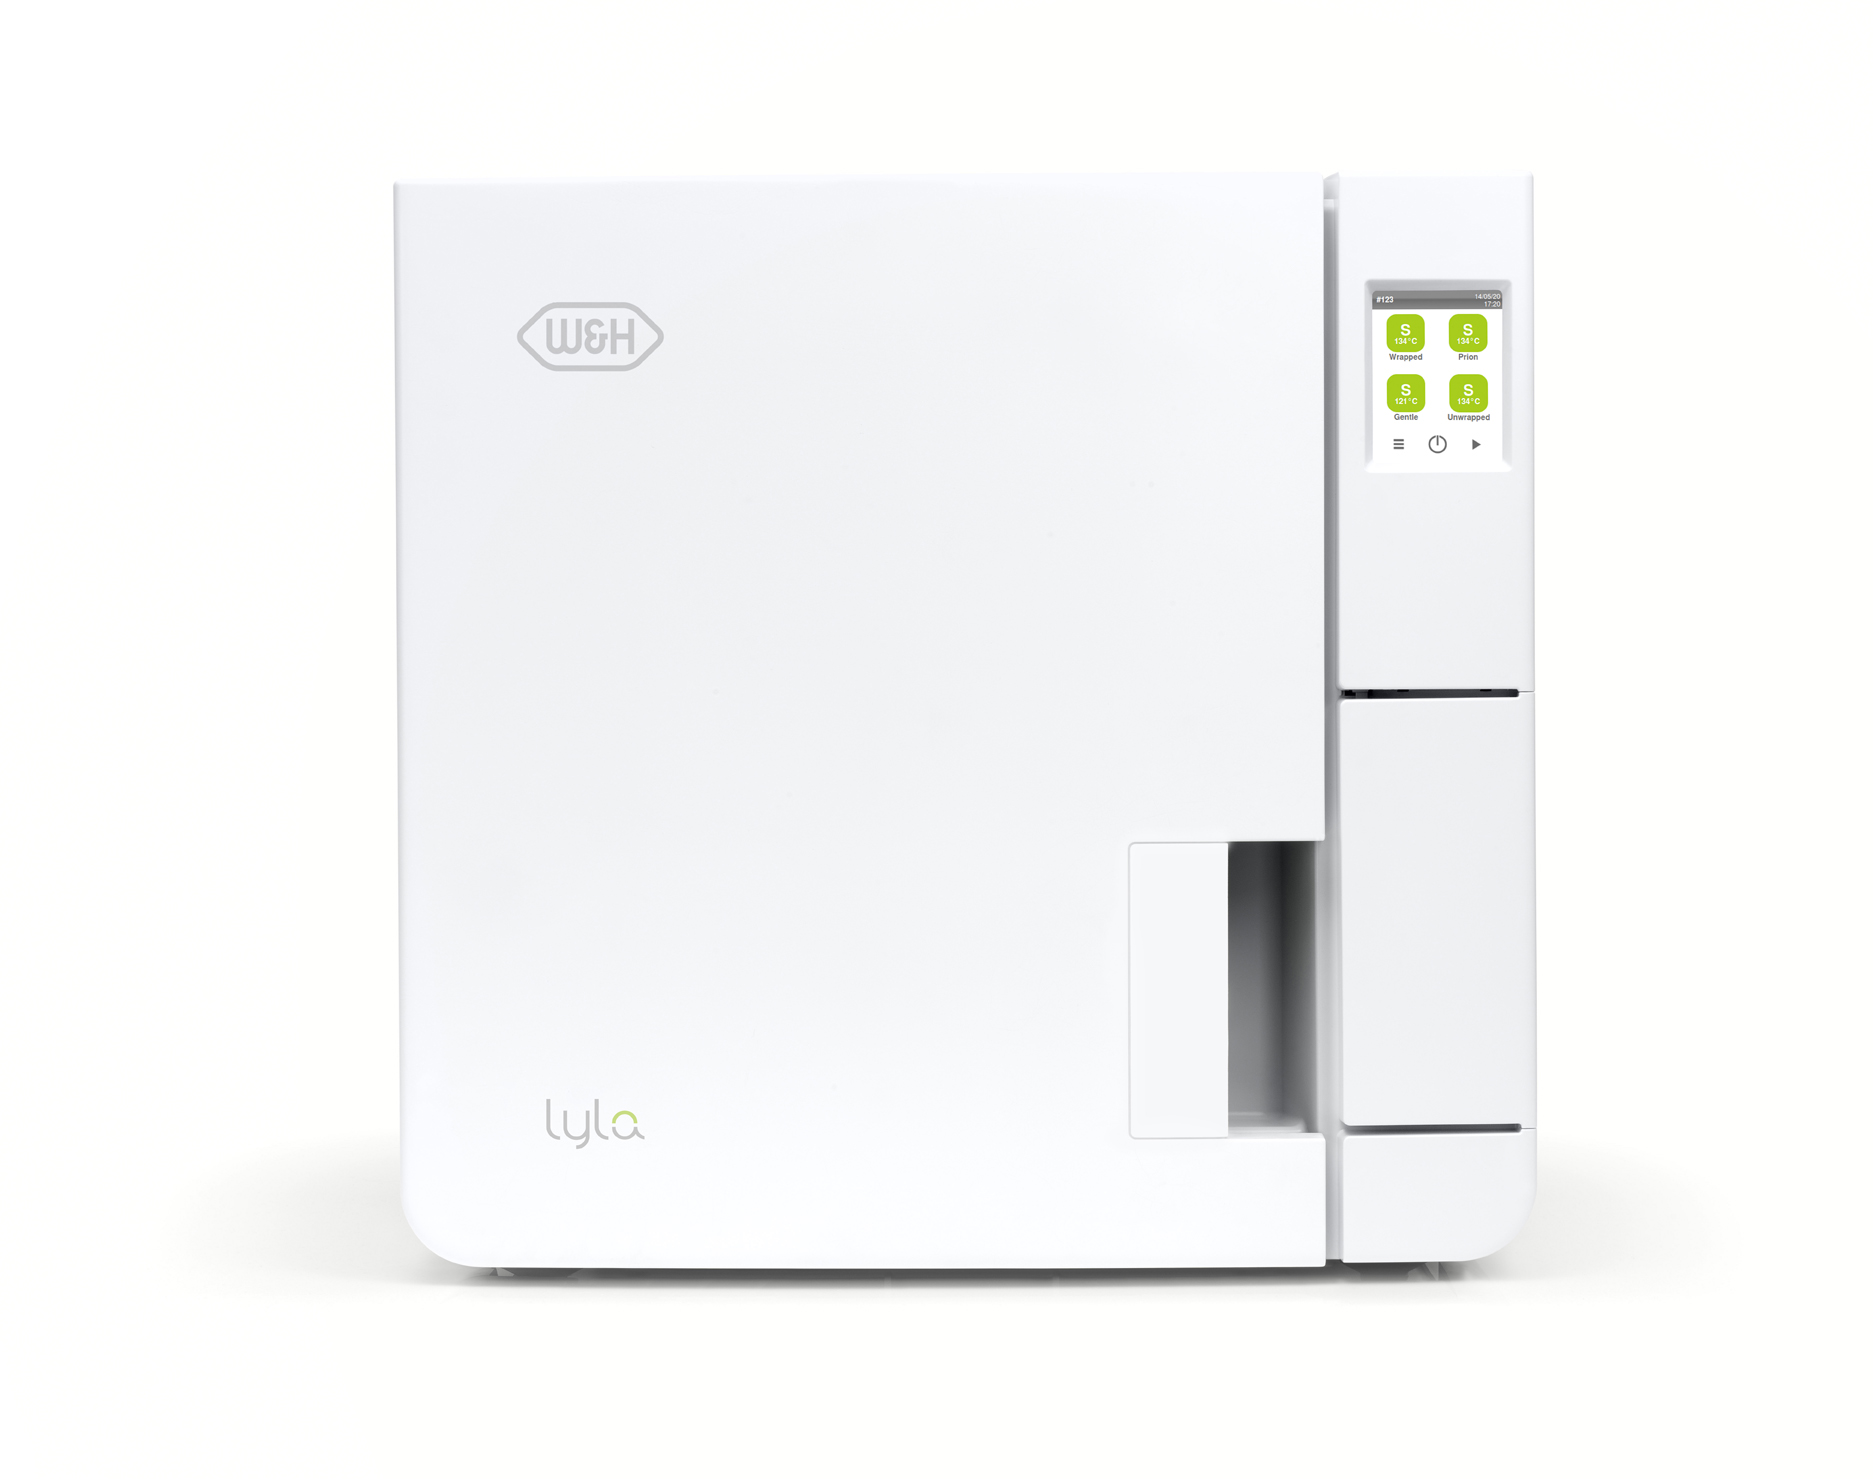 W&H Lyla Autoclave is the new autoclave in 2021